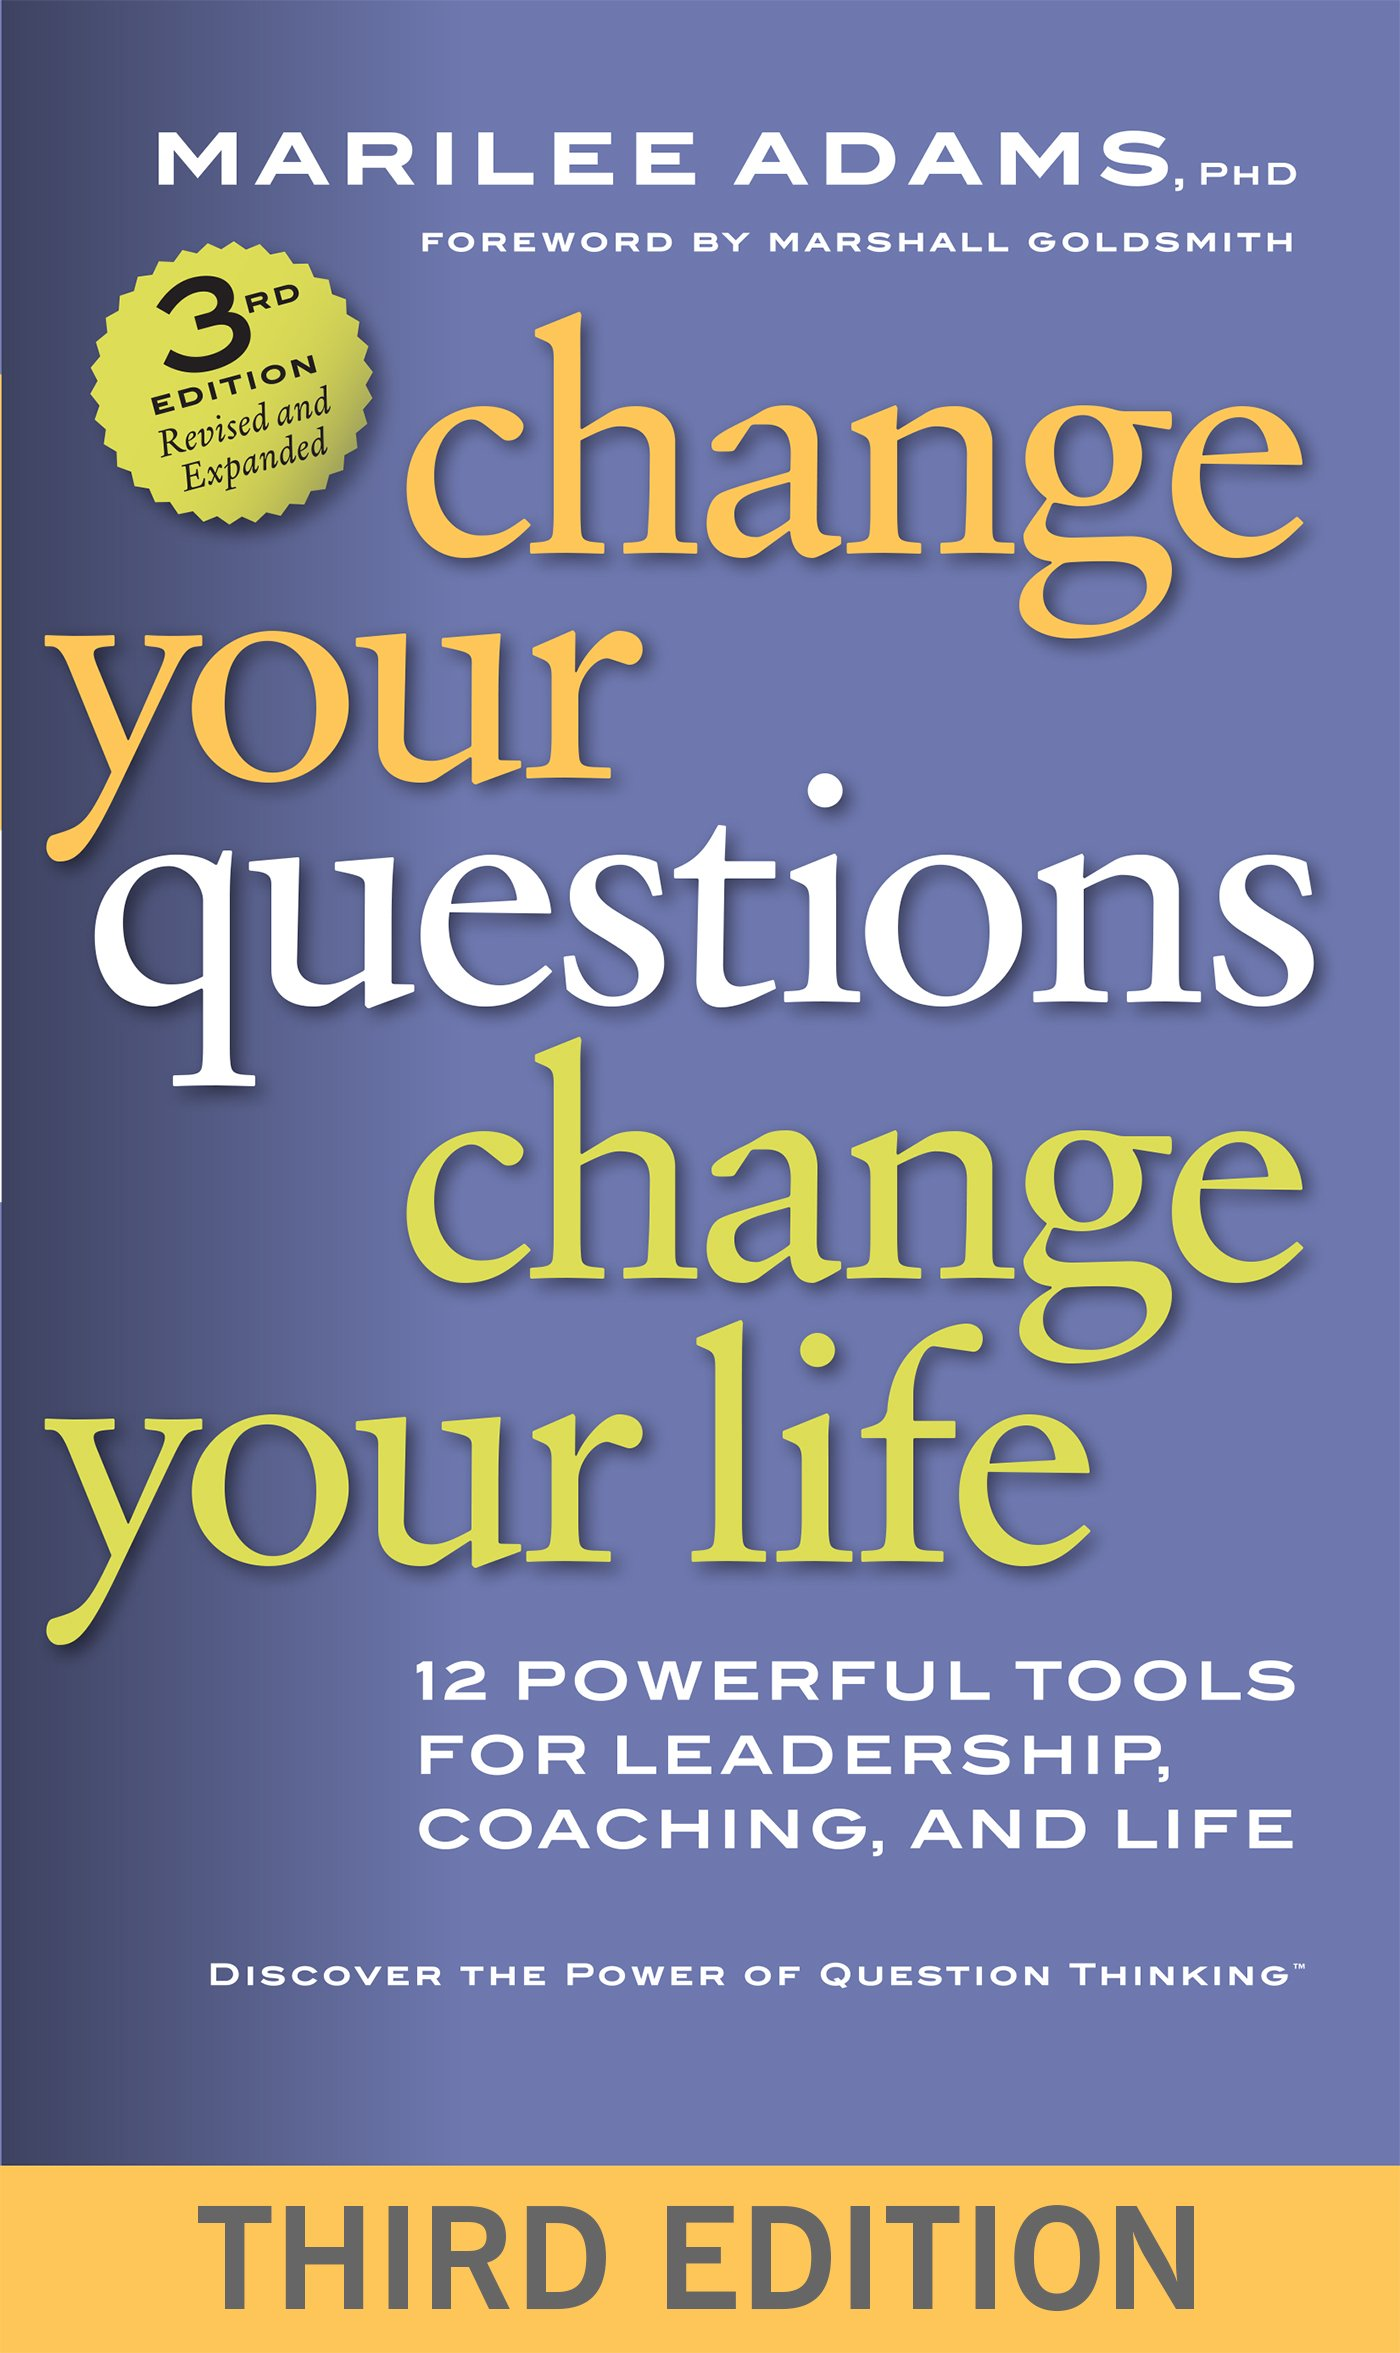 amazon com change your questions change your life 12 powerful amazon com change your questions change your life 12 powerful tools for leadership coaching and life 9781626566330 marilee g adams ph d